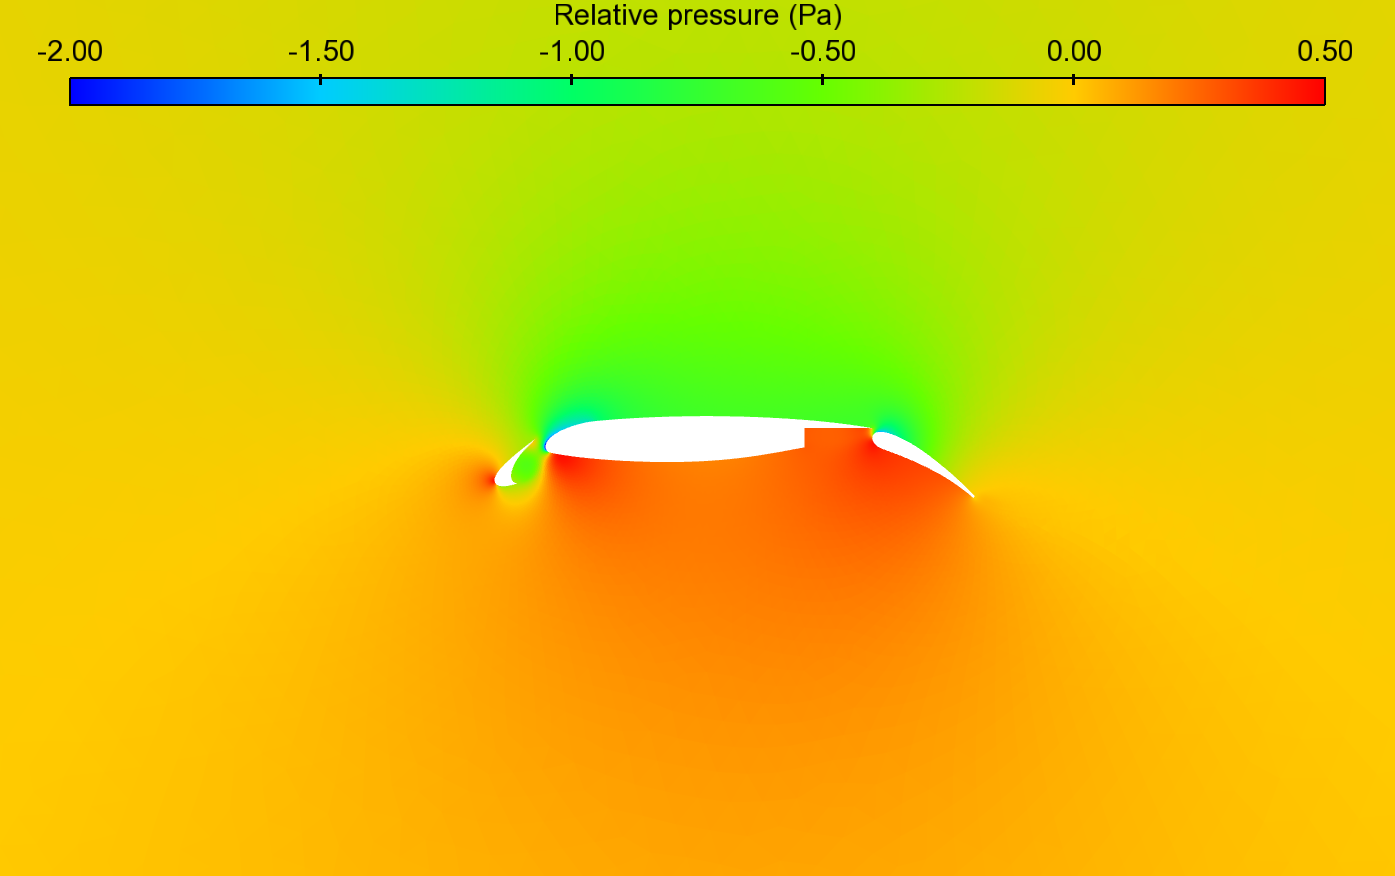 OPENFOAM VALIDATION CASES